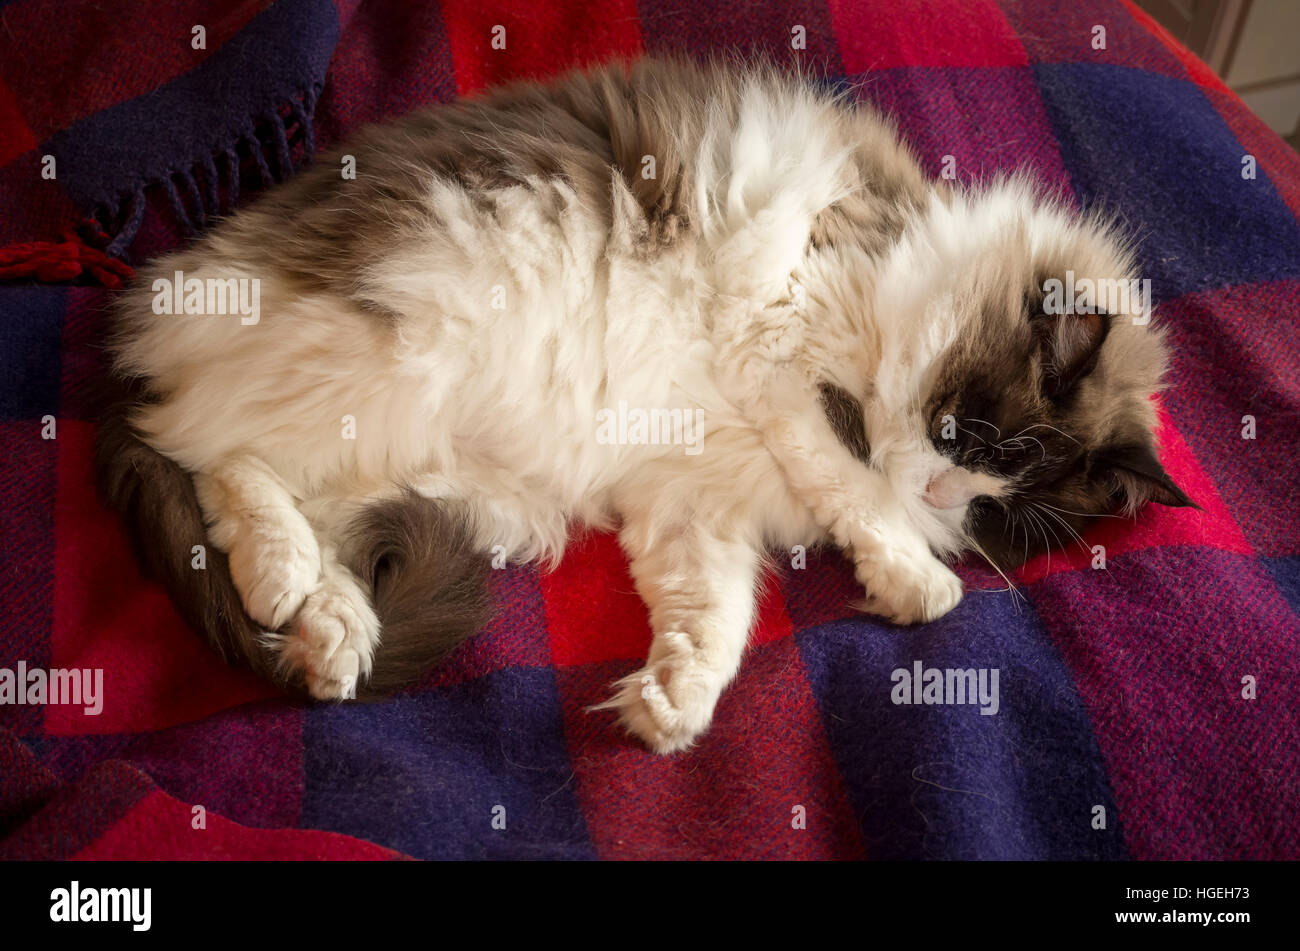 Ragdoll cat asleep on a colourful rug - Stock Image